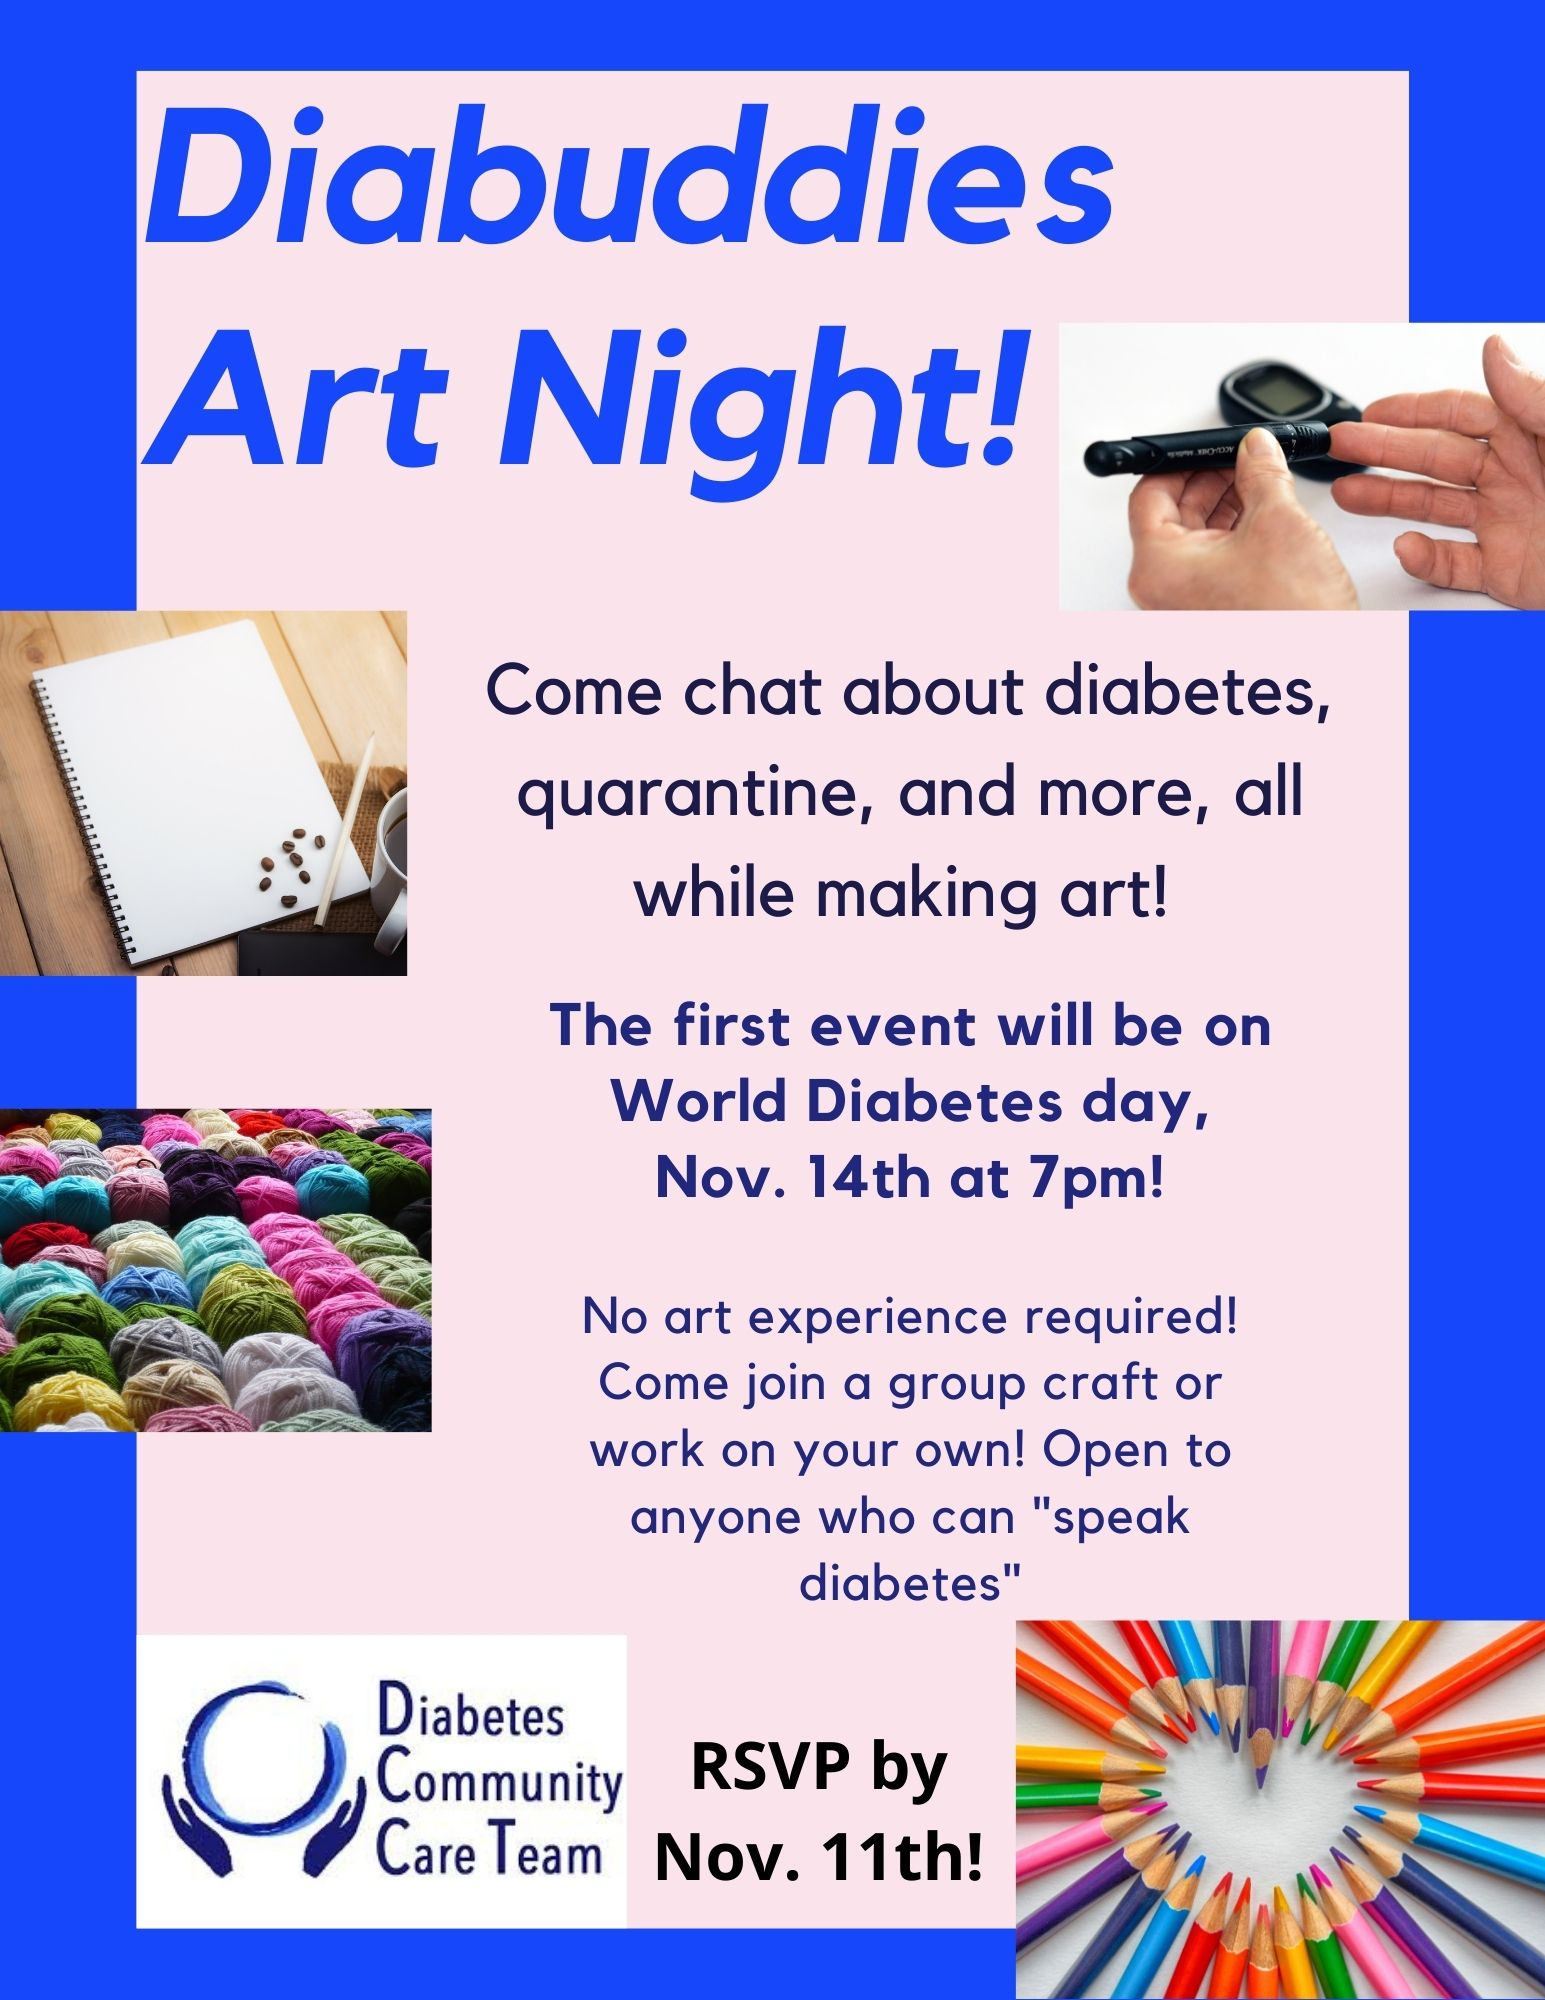 DiaBuddies Art Night